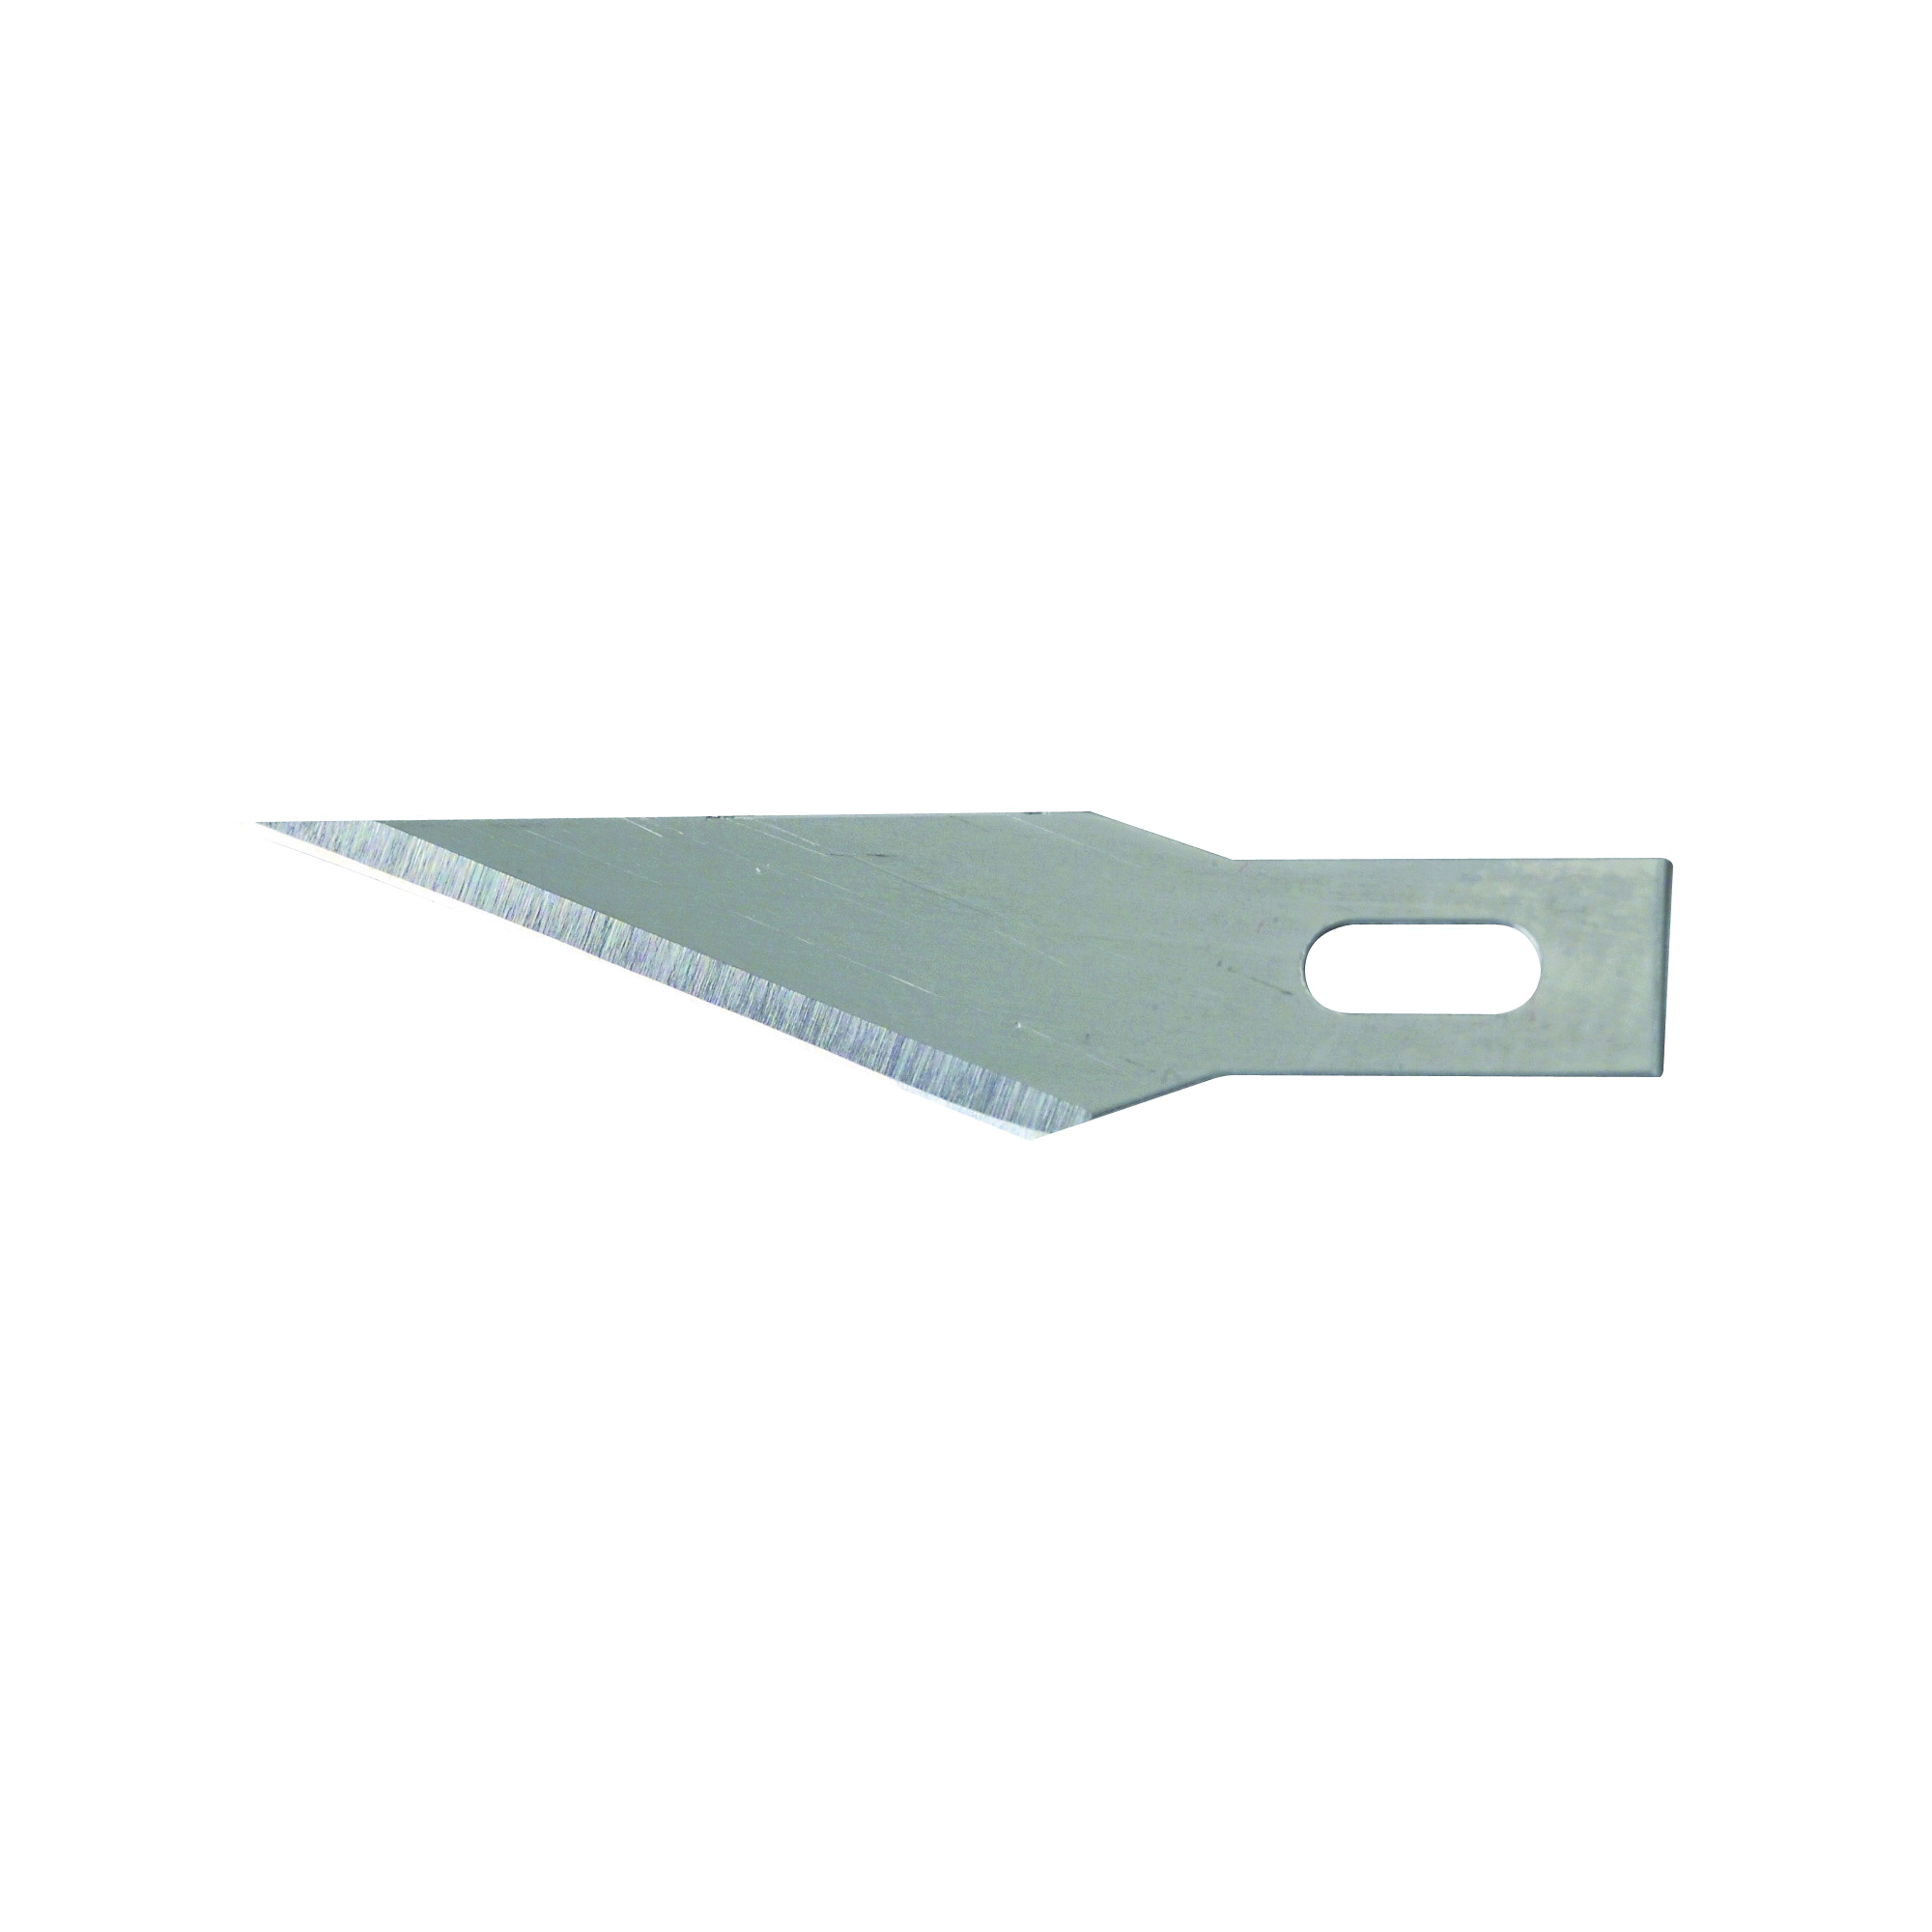 Picture of STANLEY 11-411 Hobby Knife Blade, 1-9/16 in L, Steel, 3/PK, Carded